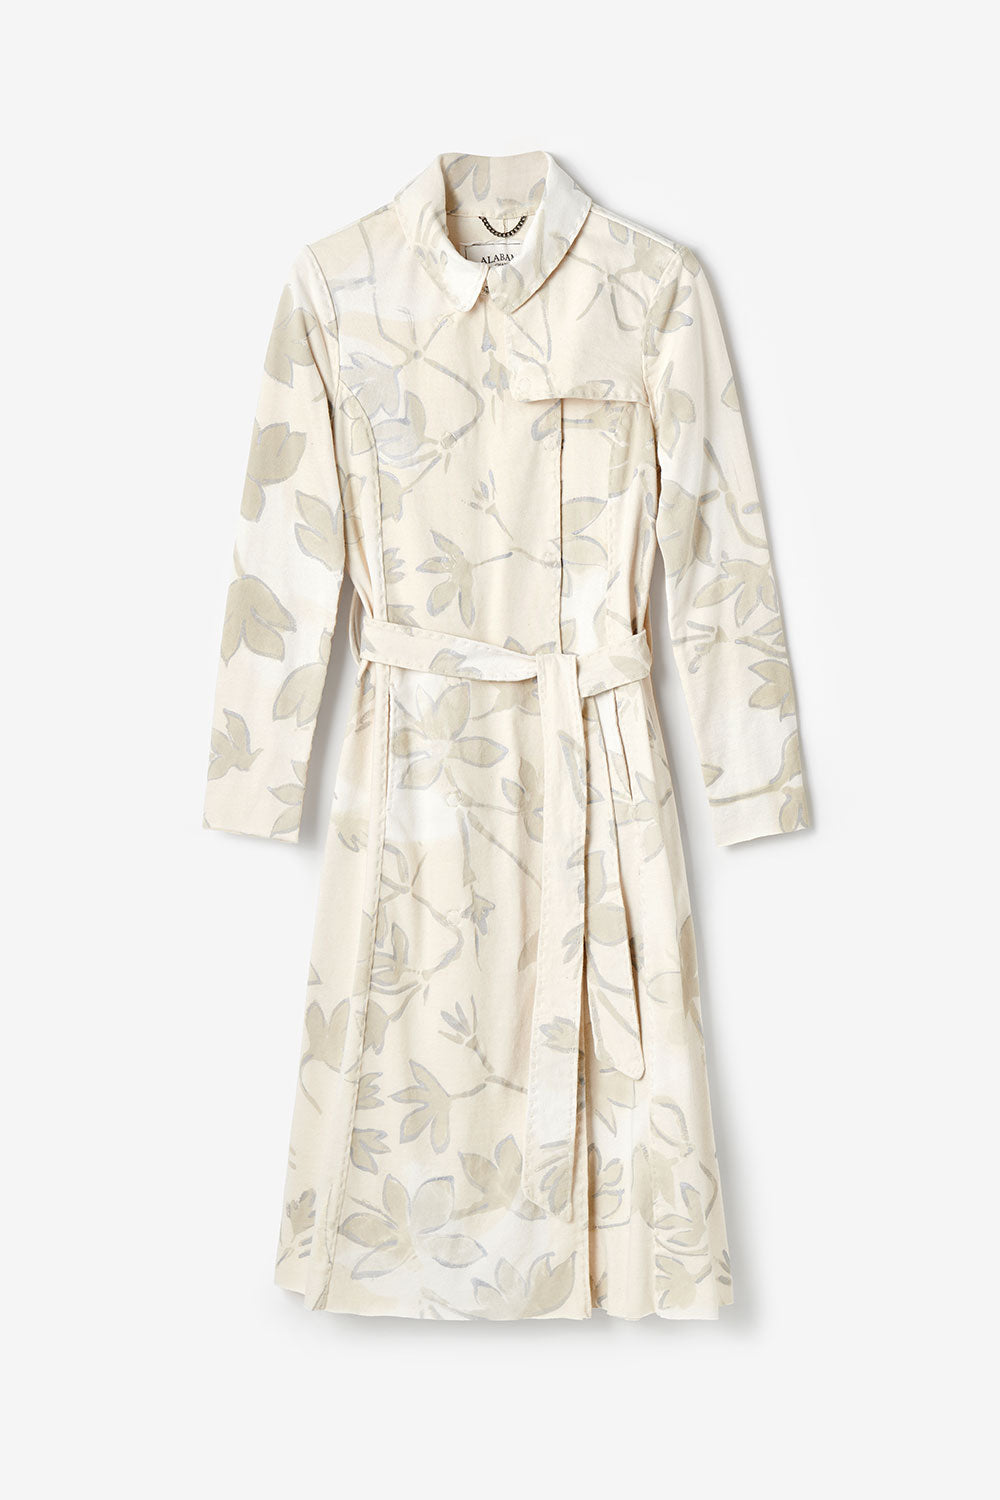 Alabama Chanin The Florence Trench Coat with Hand Painted Floral Pattern in Natural with Tie